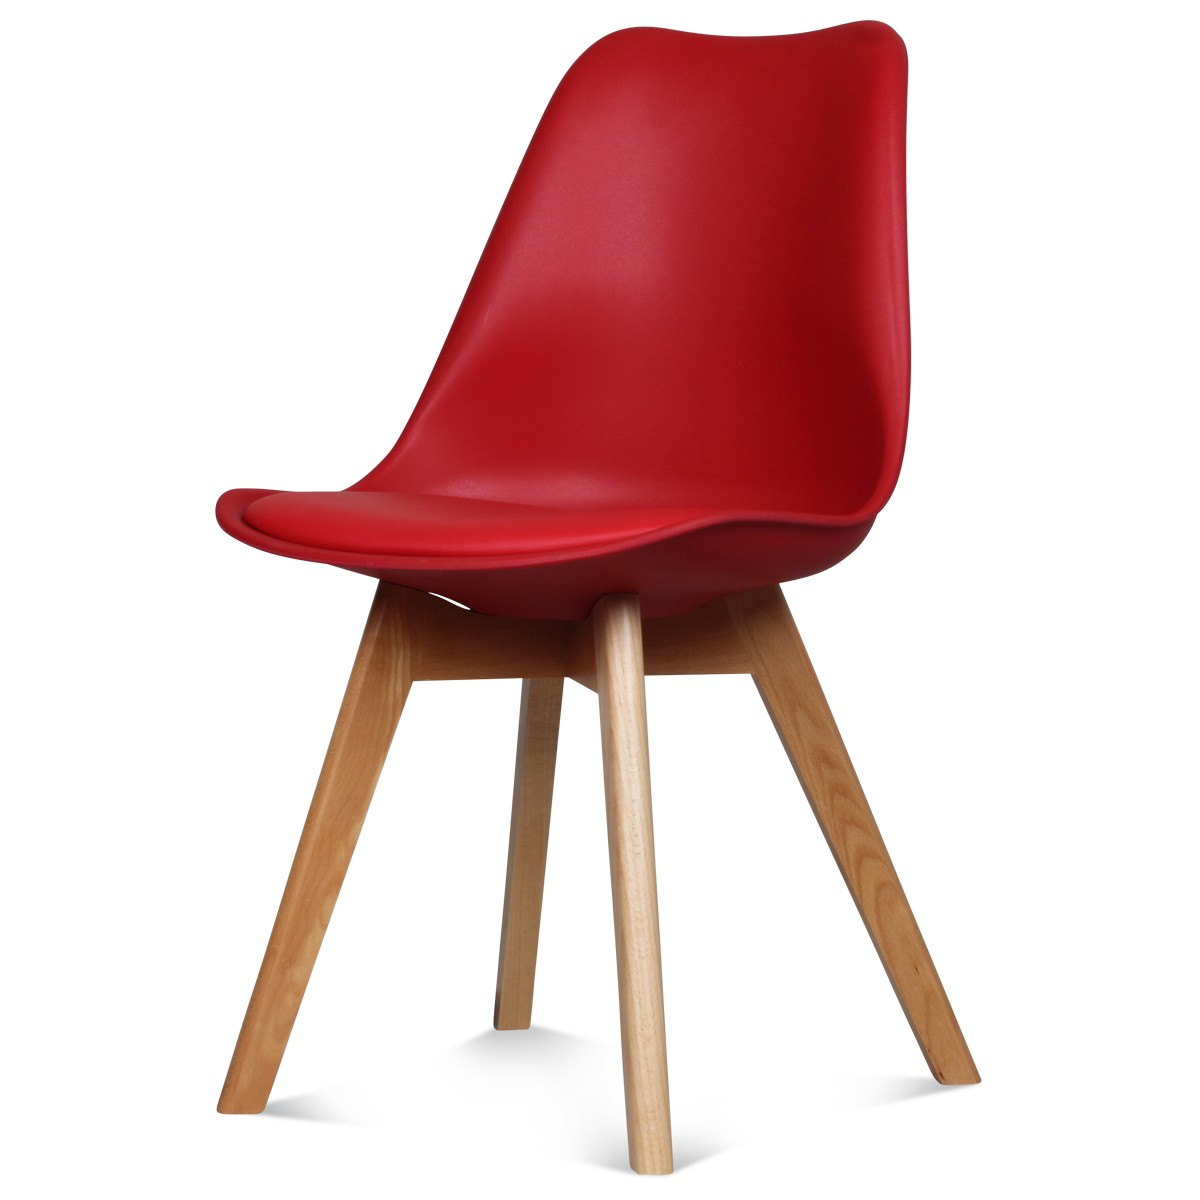 chaise scandinave rouge 48 x 43 h 83 cm a seulement 49 50